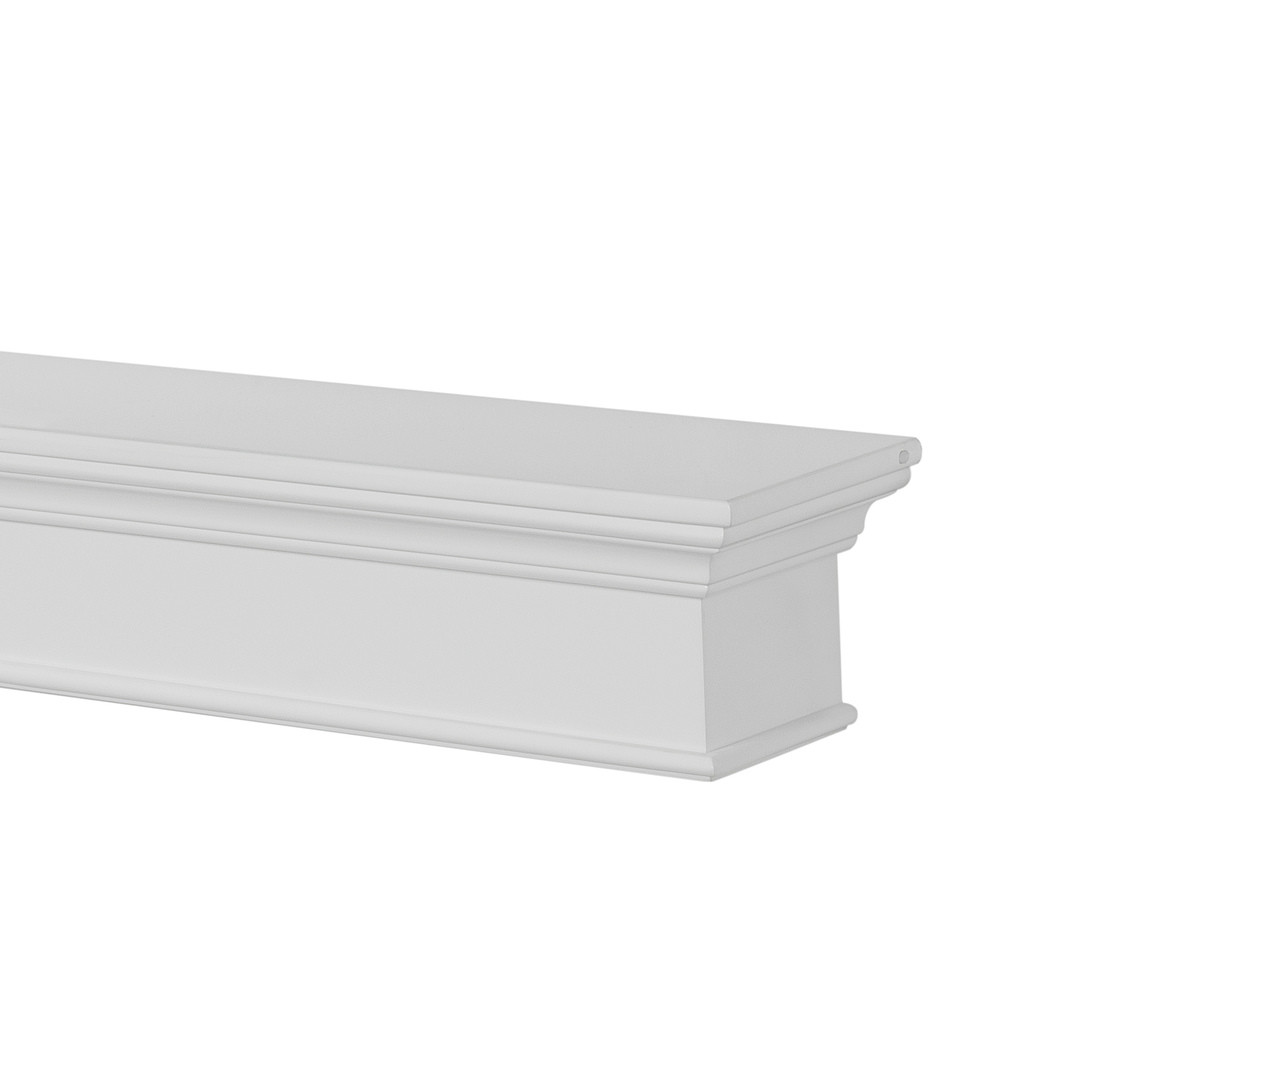 The Henry MDF Mantel Shelf, Painted White, Right Corner View